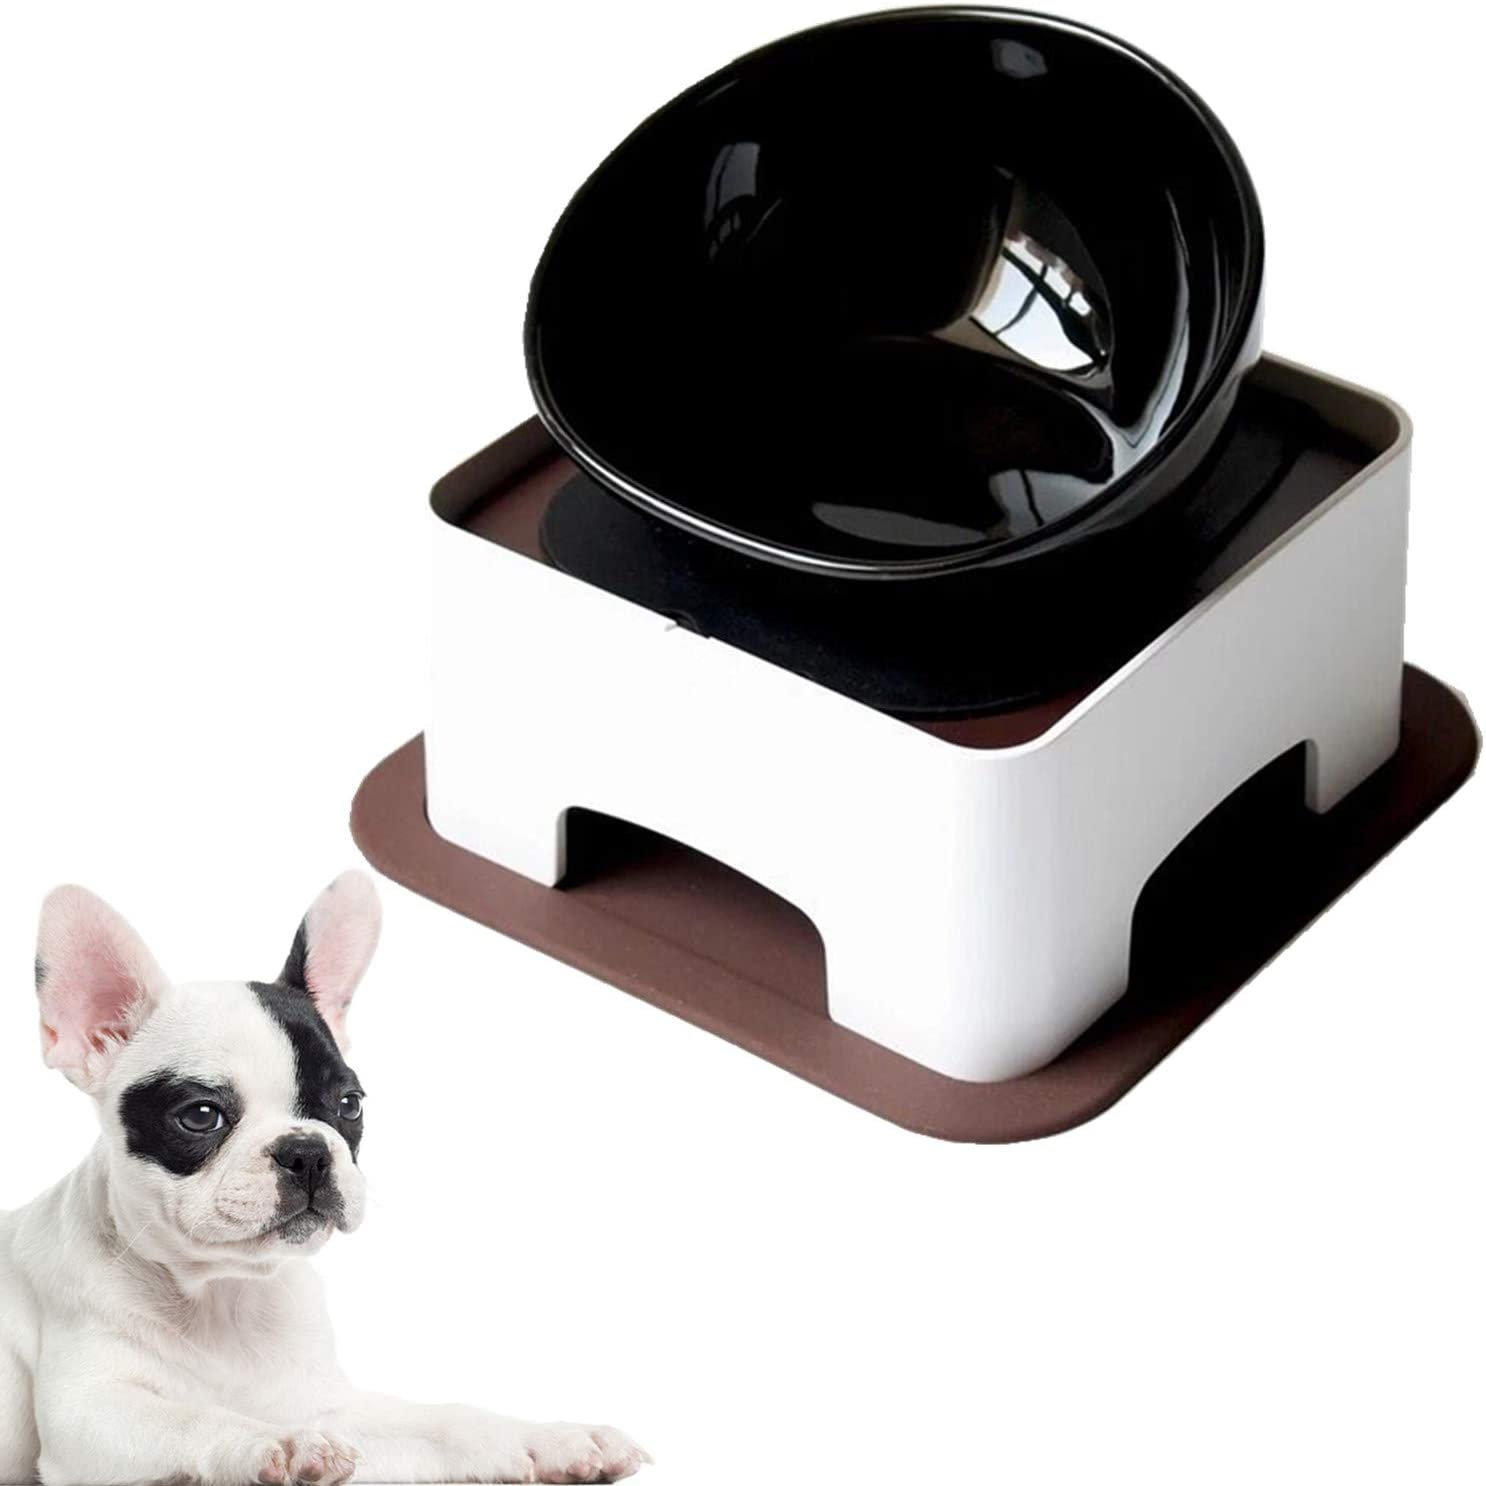 JYHY Bulldog Bowl Ceramic Dog Food Bowl - Dog Cat Dish Wide Mouth Dog Bowl Pet Sterile Tilted Pet Feeder with Anti-Skid Rubber Mat (Black Bowl Set)